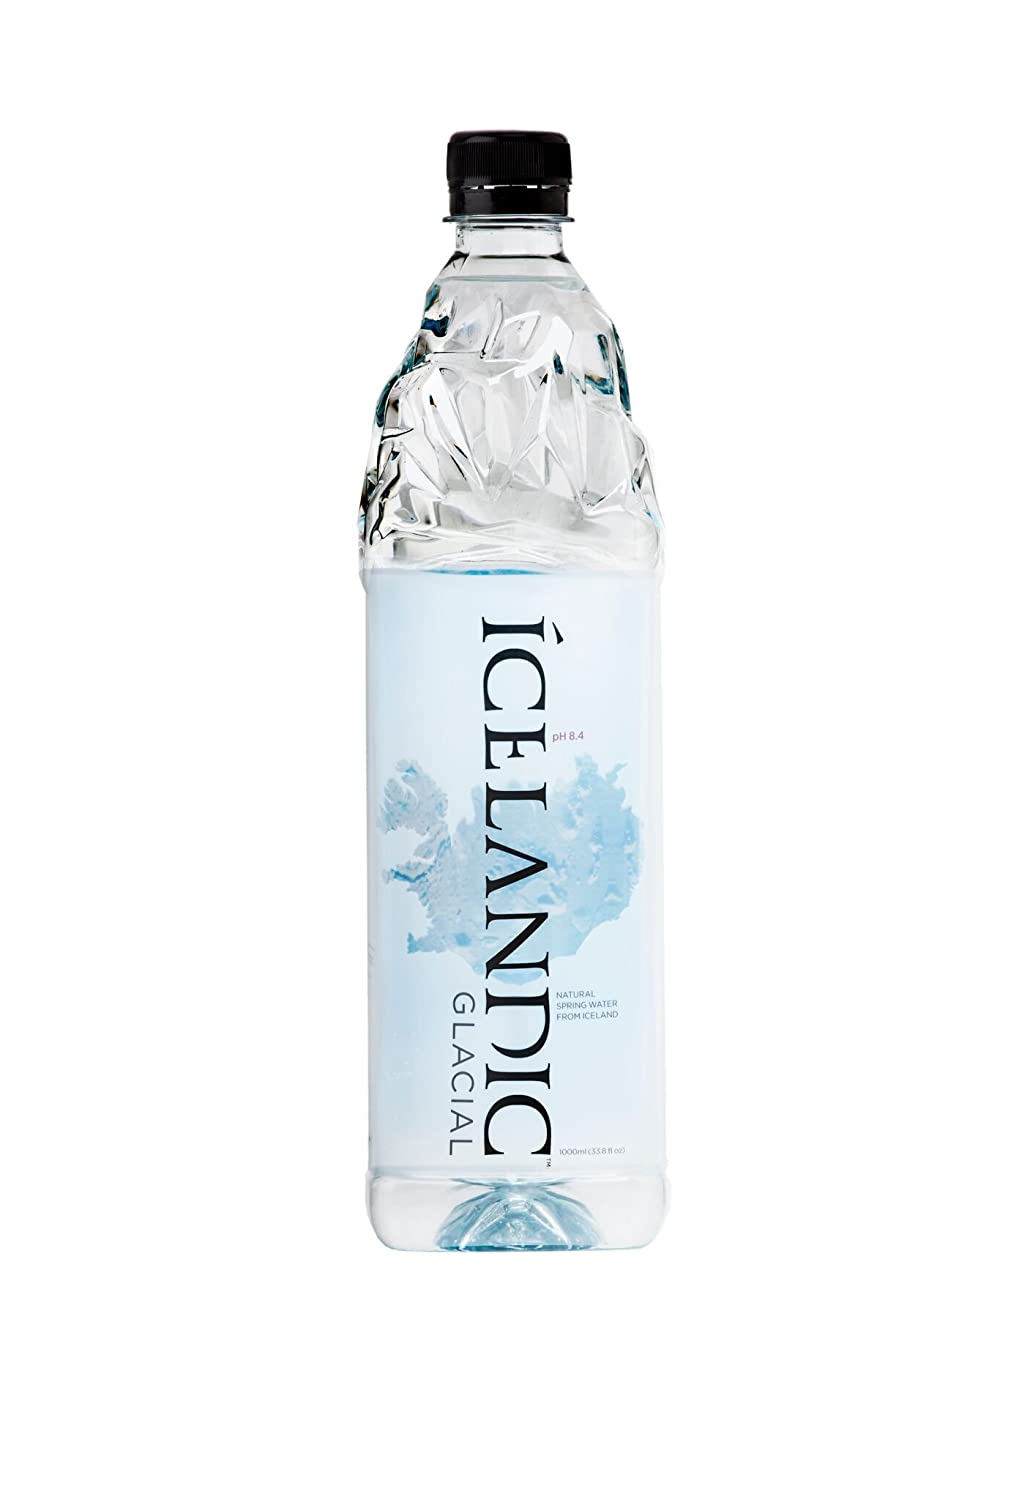 6ae2bccf91 Icelandic Glacial Natural Spring Water, 1.5 Liter, 12 Count: Amazon.com:  Grocery & Gourmet Food